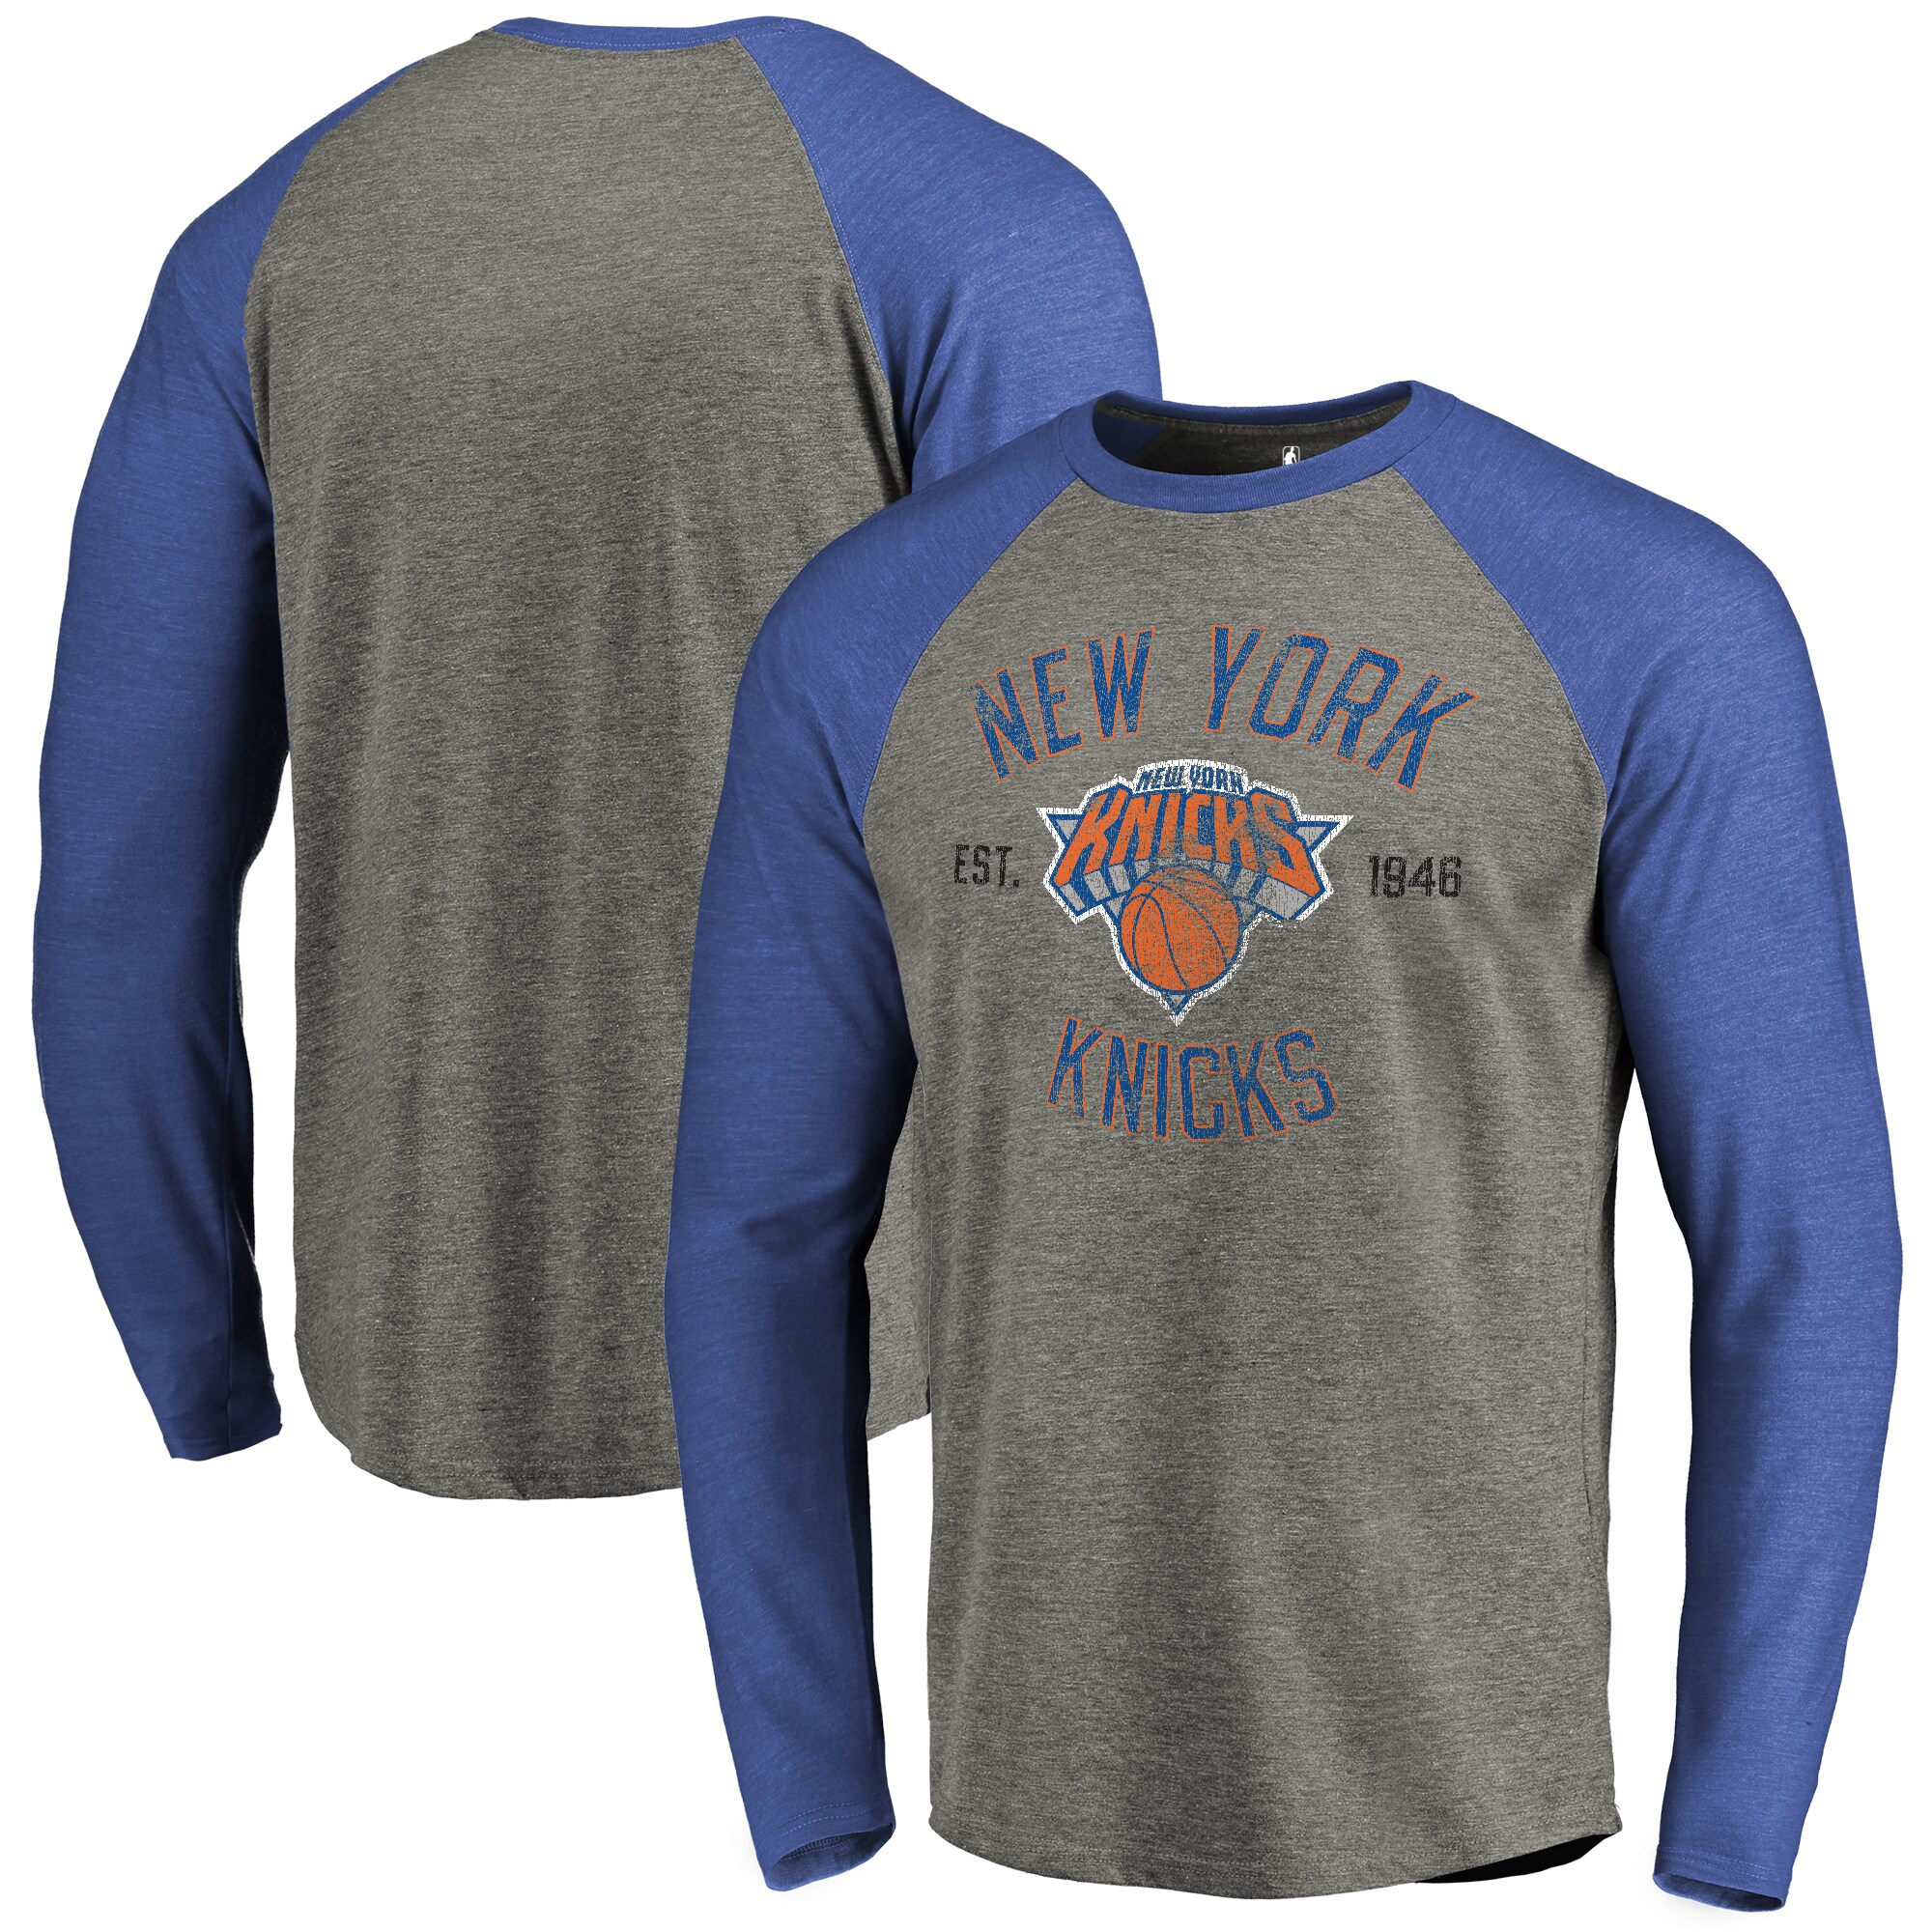 New York Knicks Fanatics Branded Heritage Long Sleeve Raglan T-Shirt - Heathered Gray